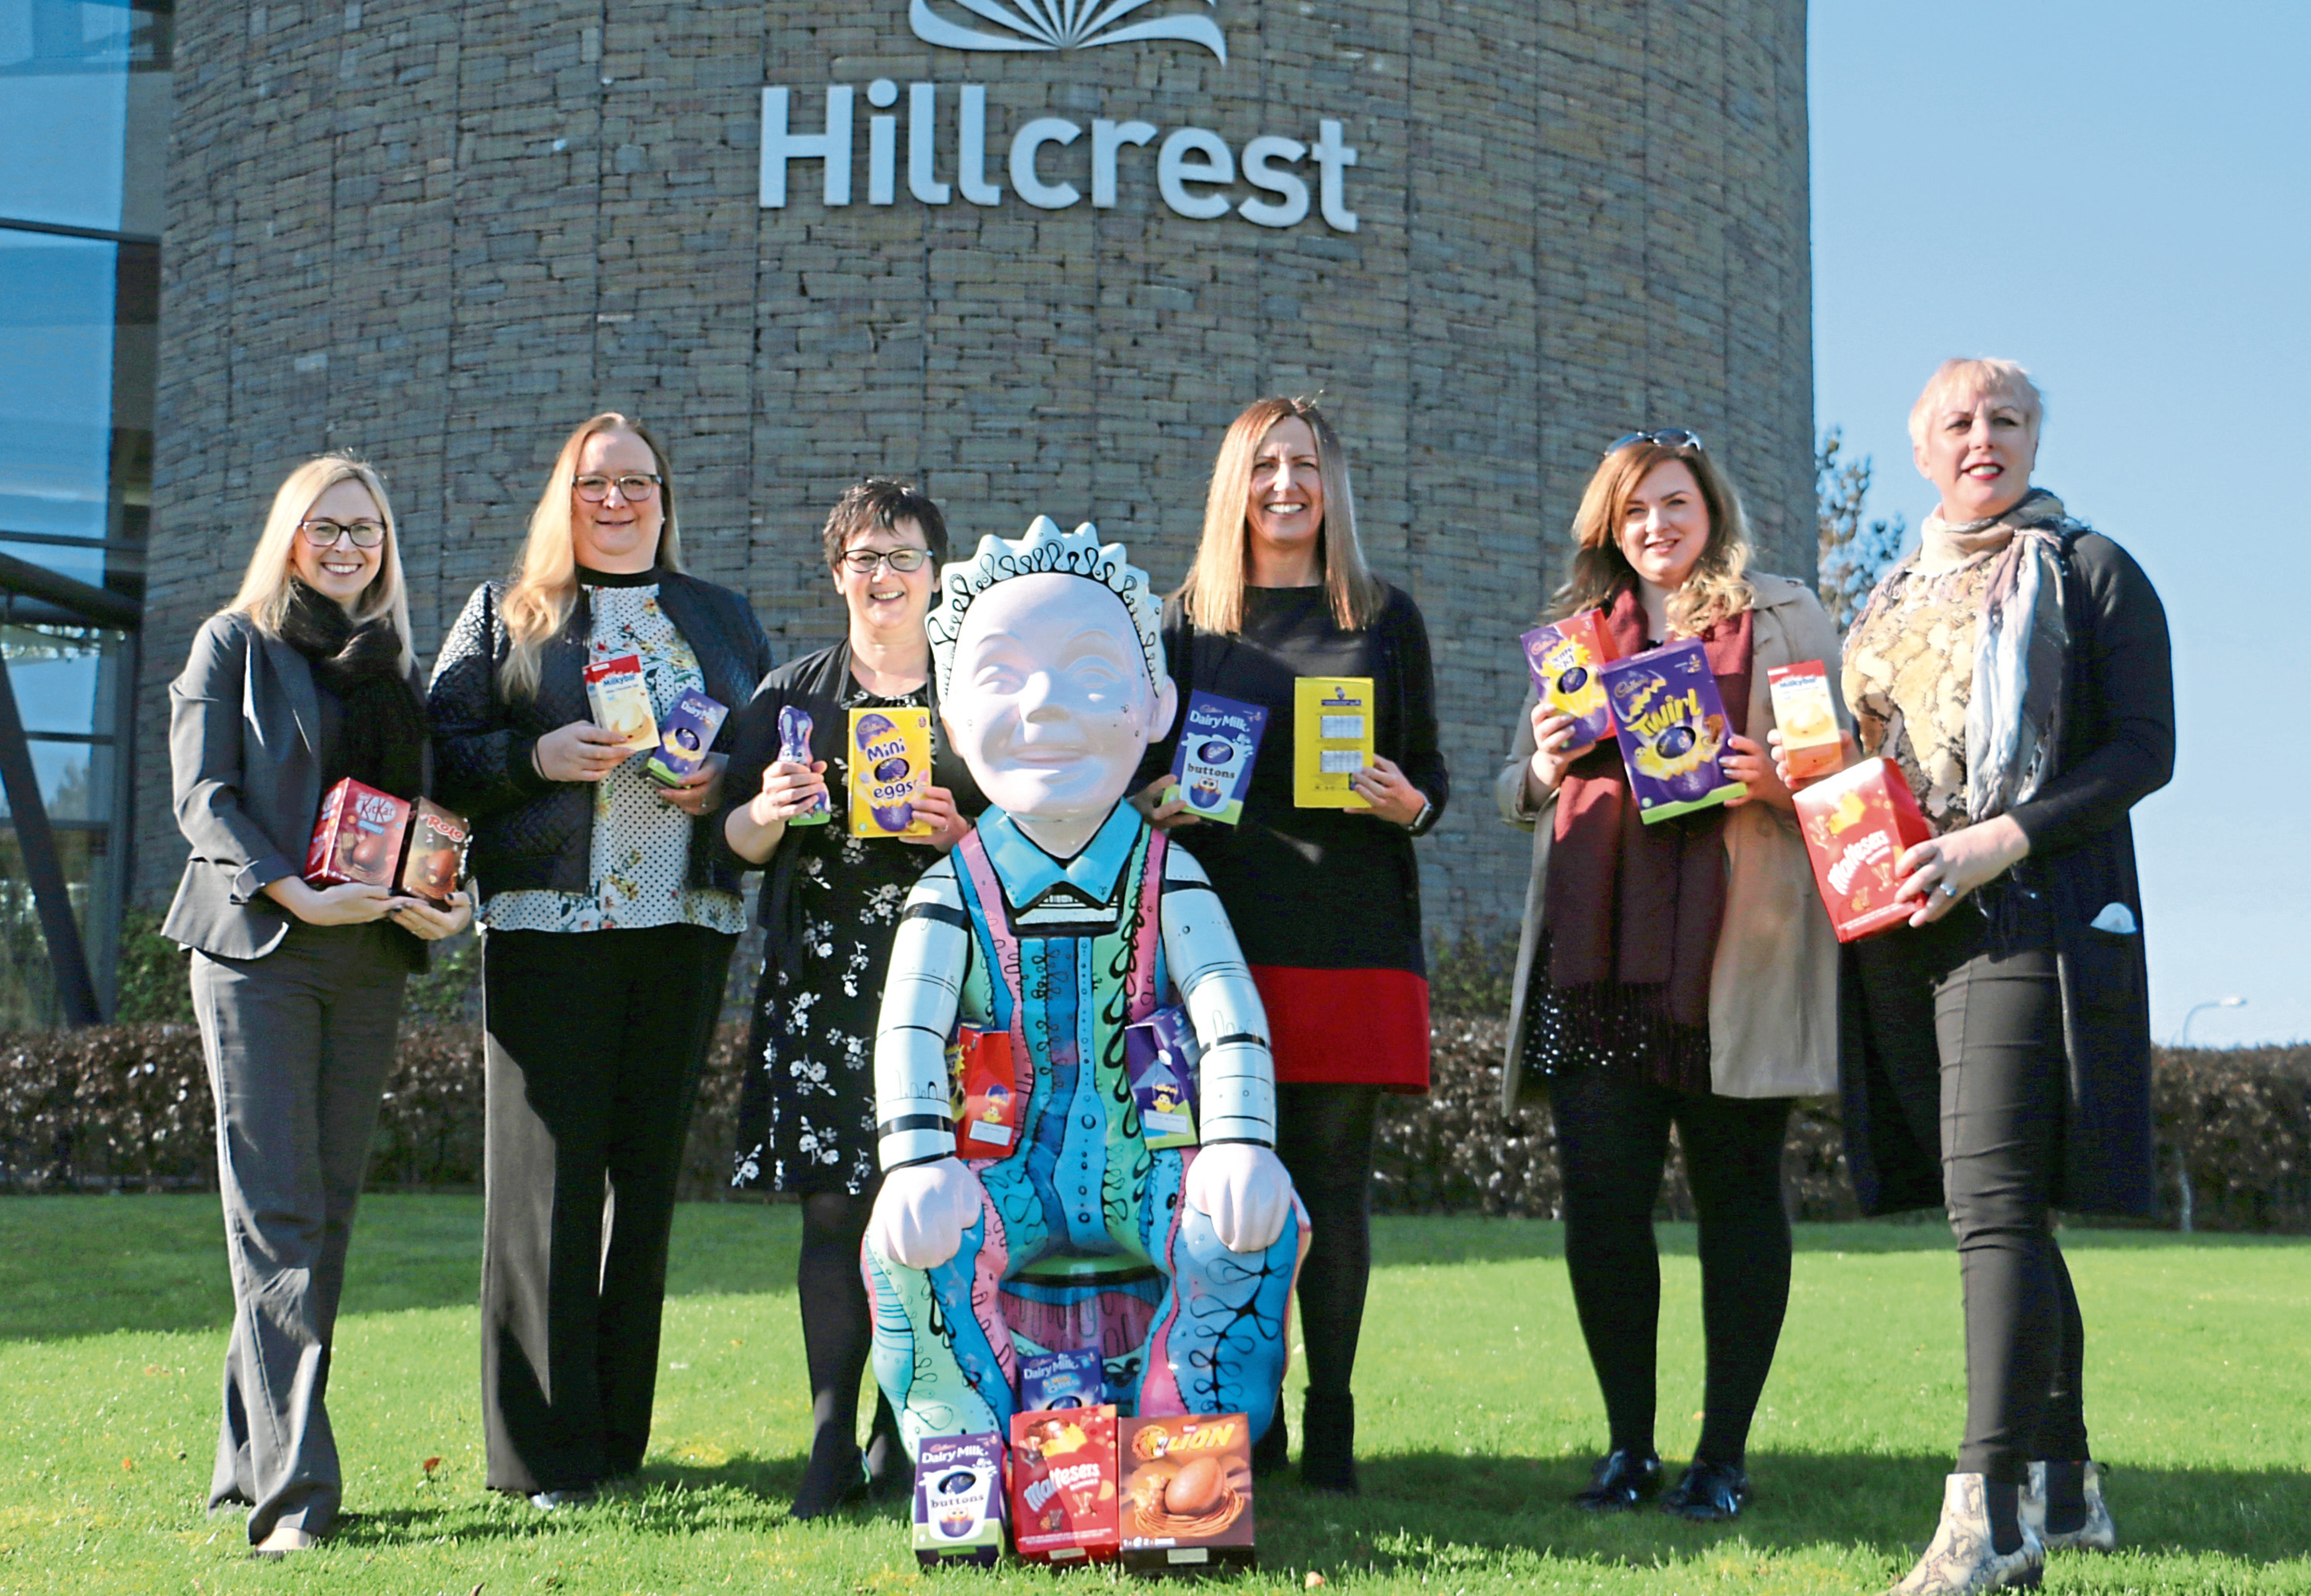 Hillcrest have teamed up with Thorntons Solicitors and Estate Agents to launch an Easter egg appeal